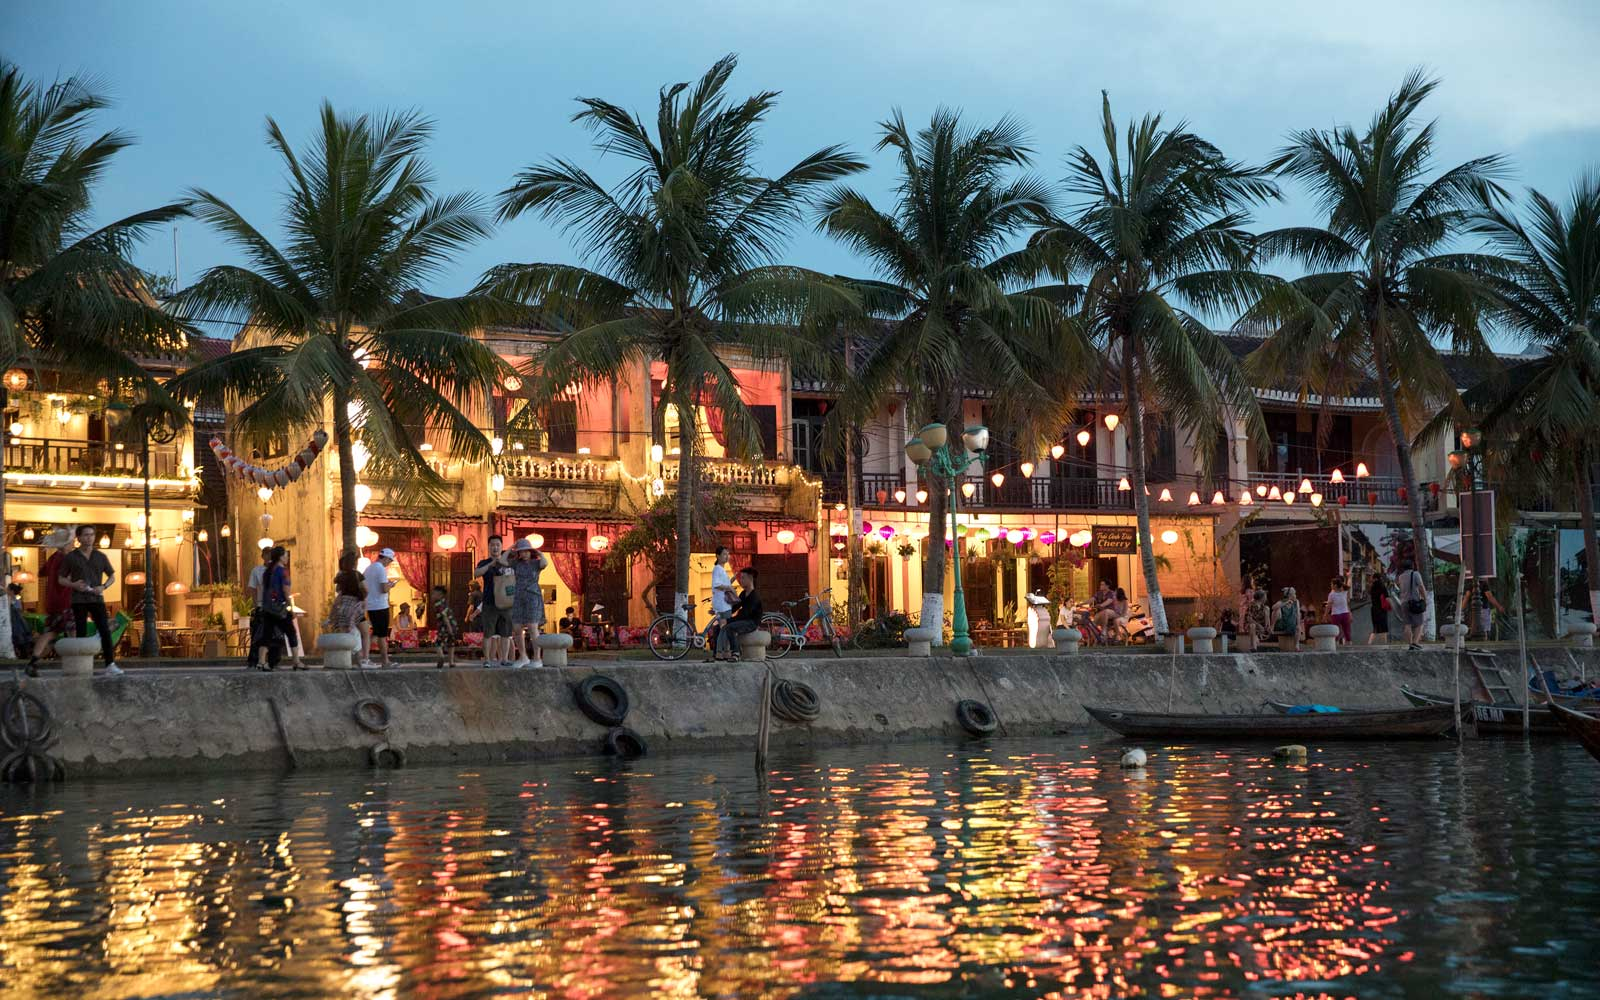 Why Notoriously Touristy Hoi An Is Actually One of the Most Exciting Cities in Vietnam